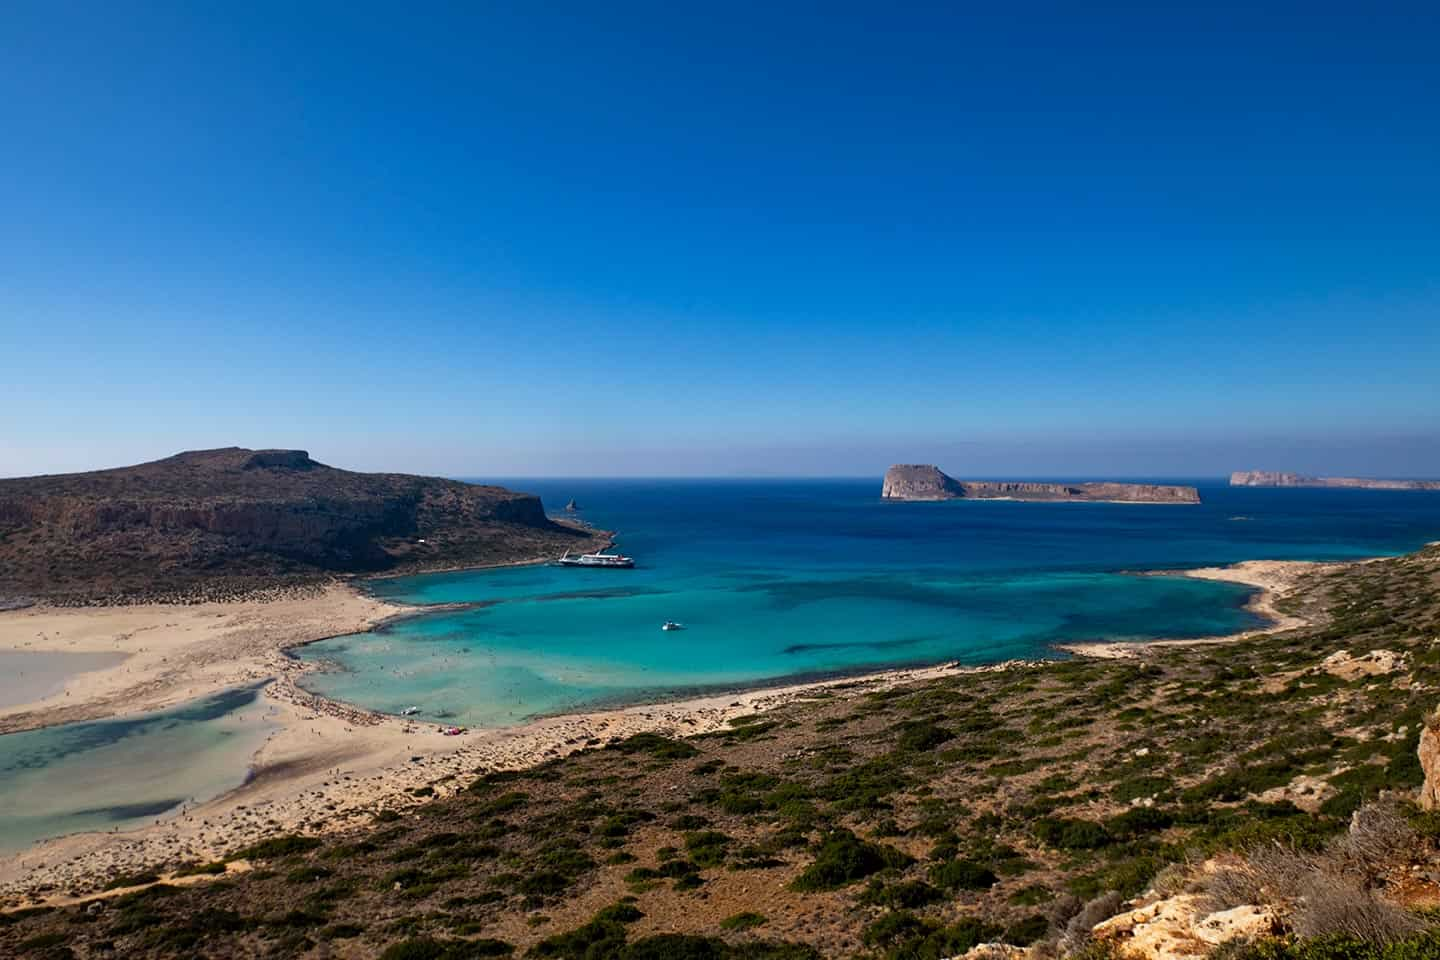 Image of Balos beach and Gramvousa islands Crete Greece